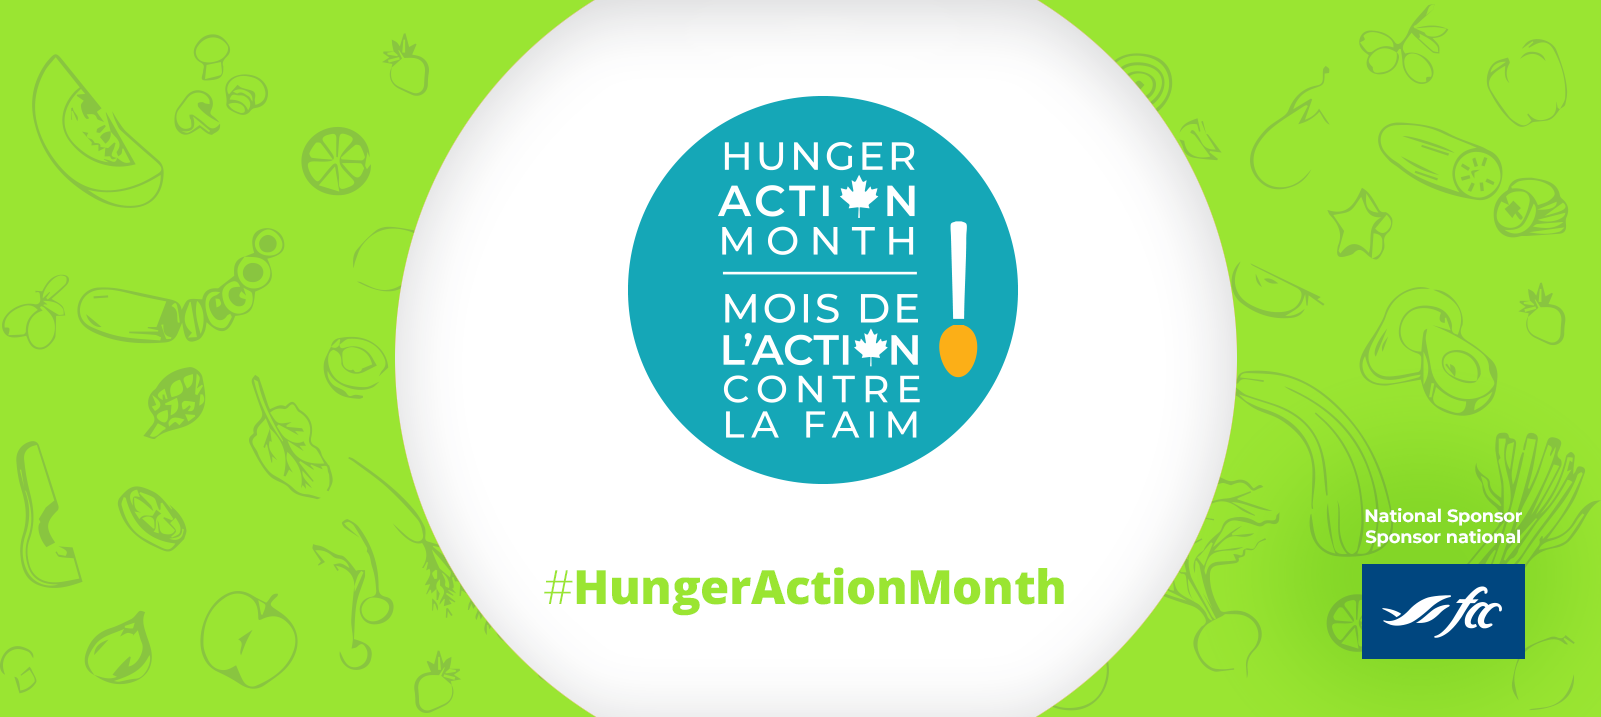 Hunger Action Month is returning once again in September and will run throughout the entire month.